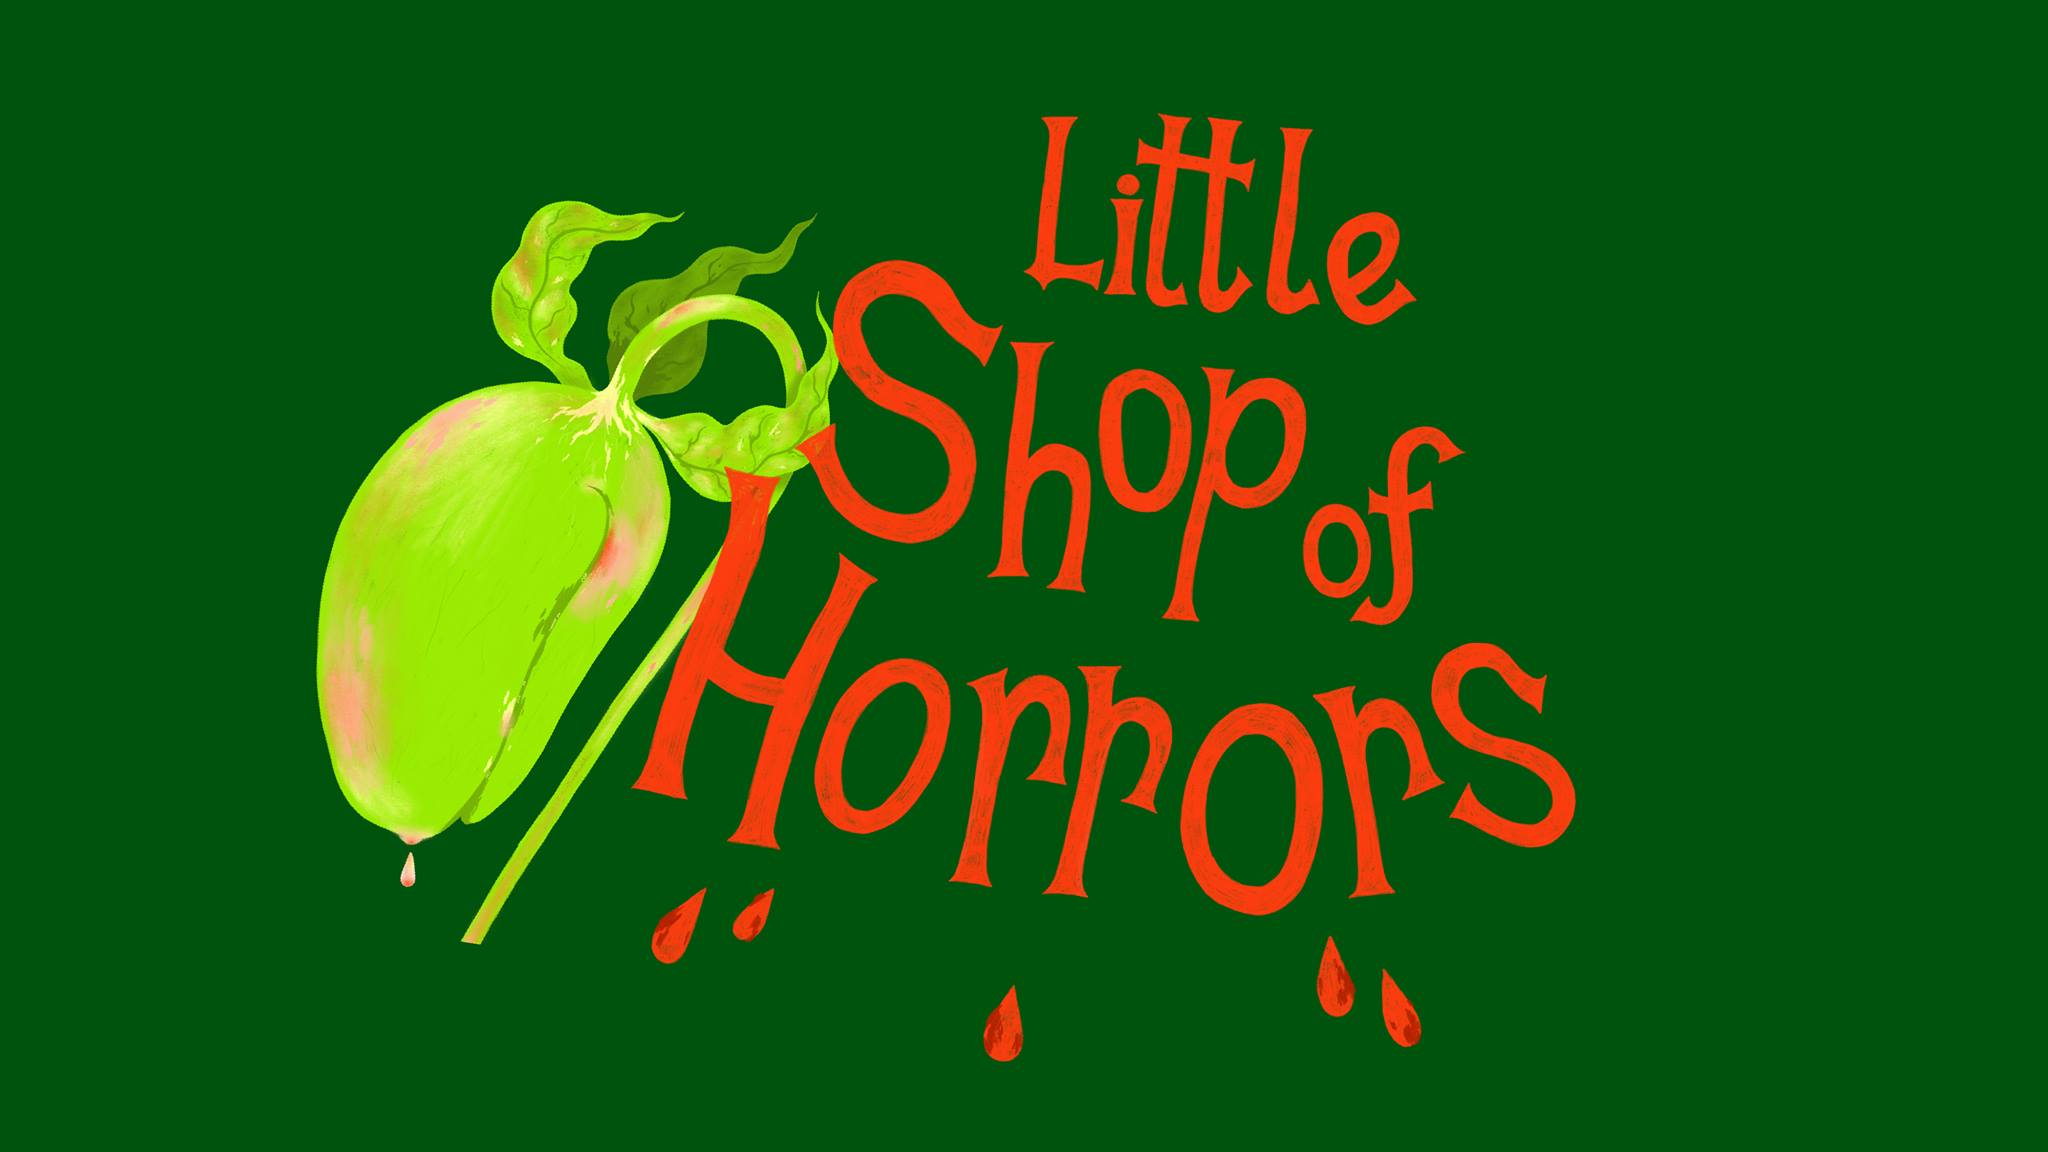 Byu S Little Shop Of Horrors Whatever You Do Don T Feed The